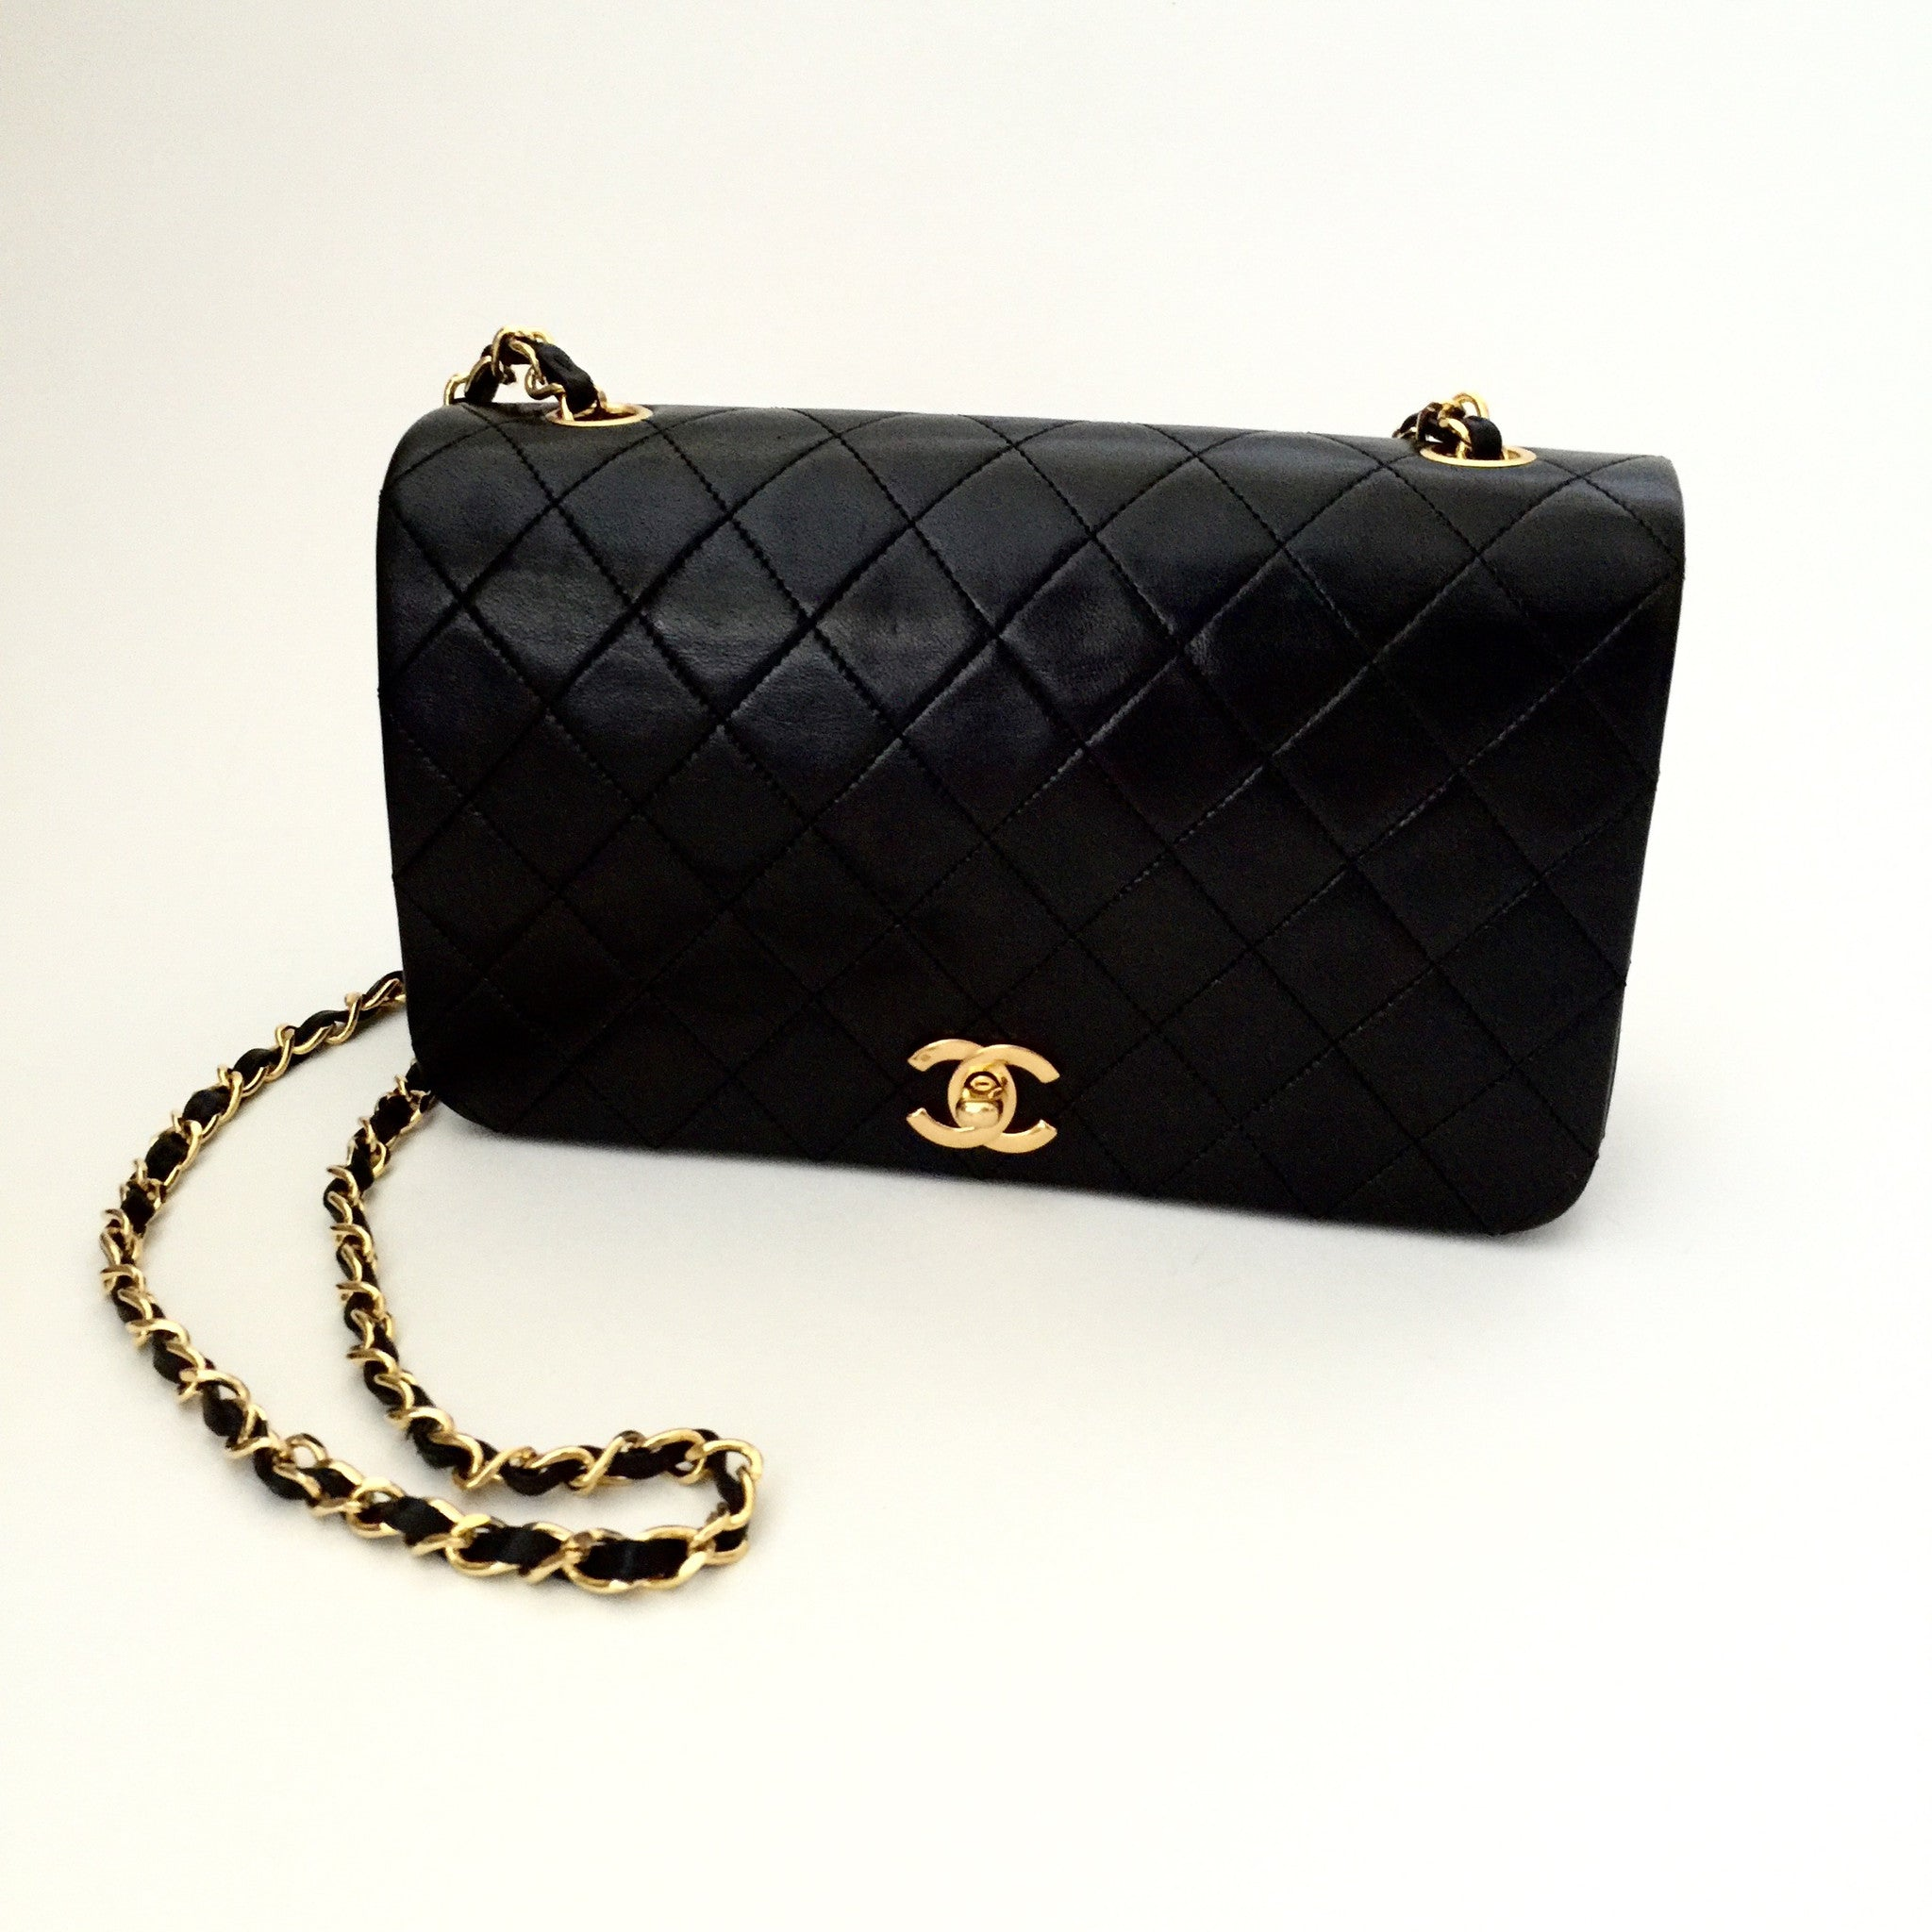 "Authentic CHANEL Vintage 9"" Full Flap Bag"